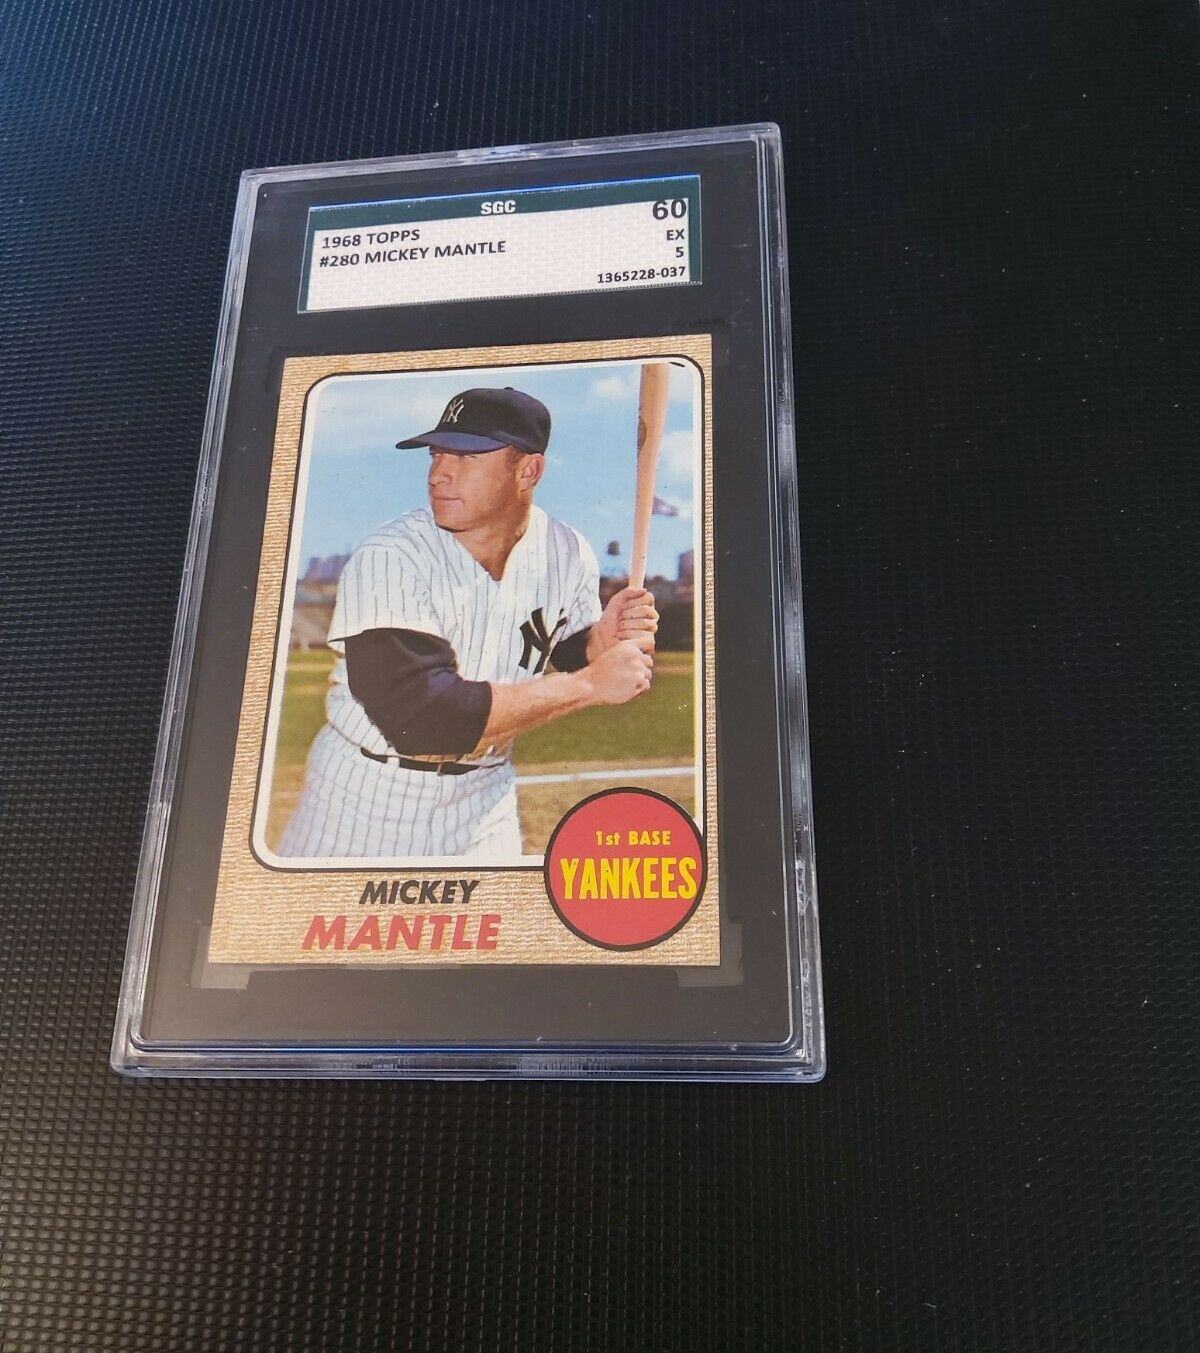 1968 TOPPS BASEBALL #280 MICKEY MANTLE SGC 5 EXCELLENT (60), Nice Corners - Image 1